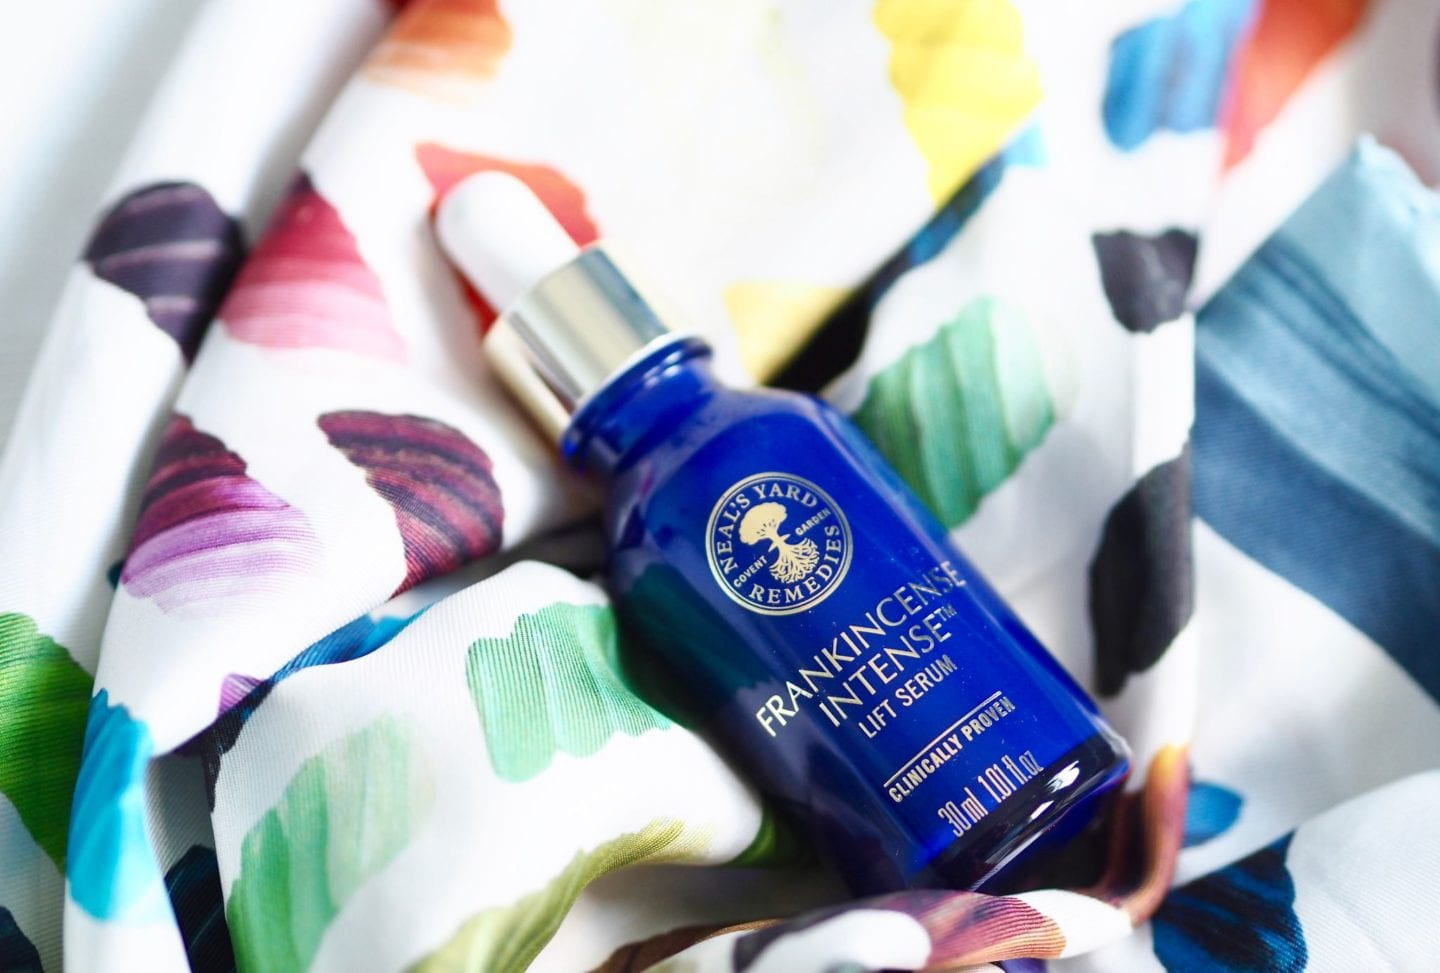 Neal's Yard Remedies.